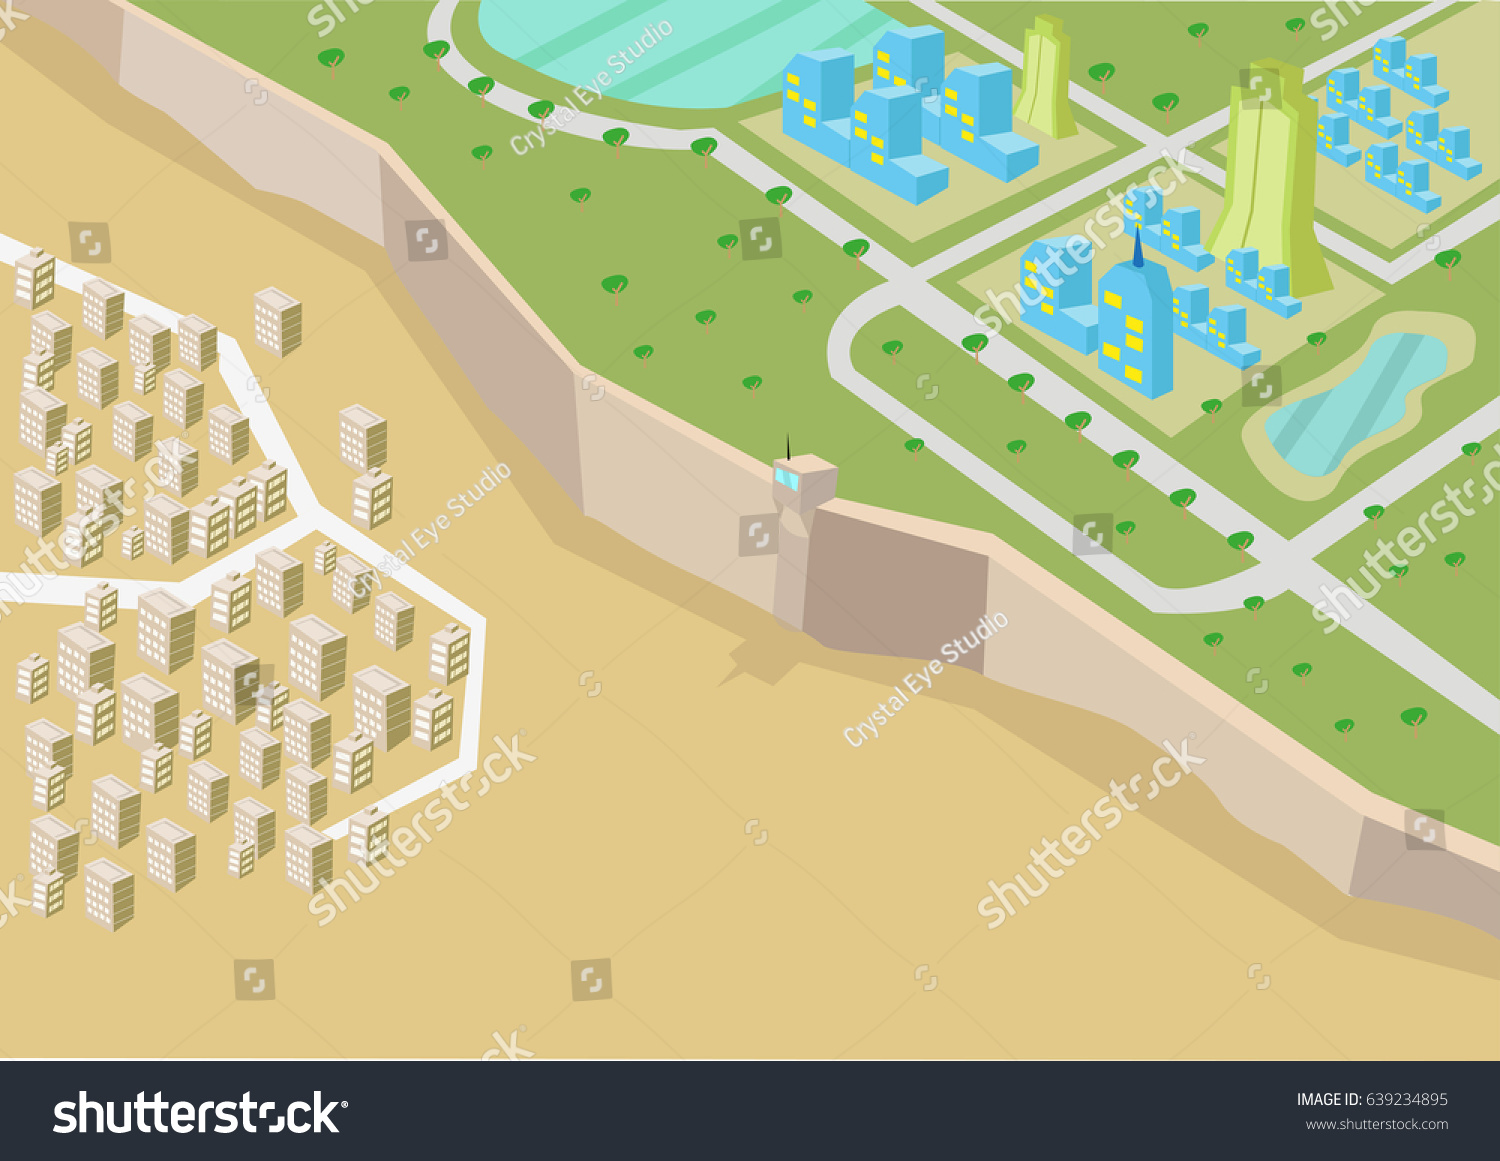 Clipart Us Map Mexico Border us map 50 united states borders